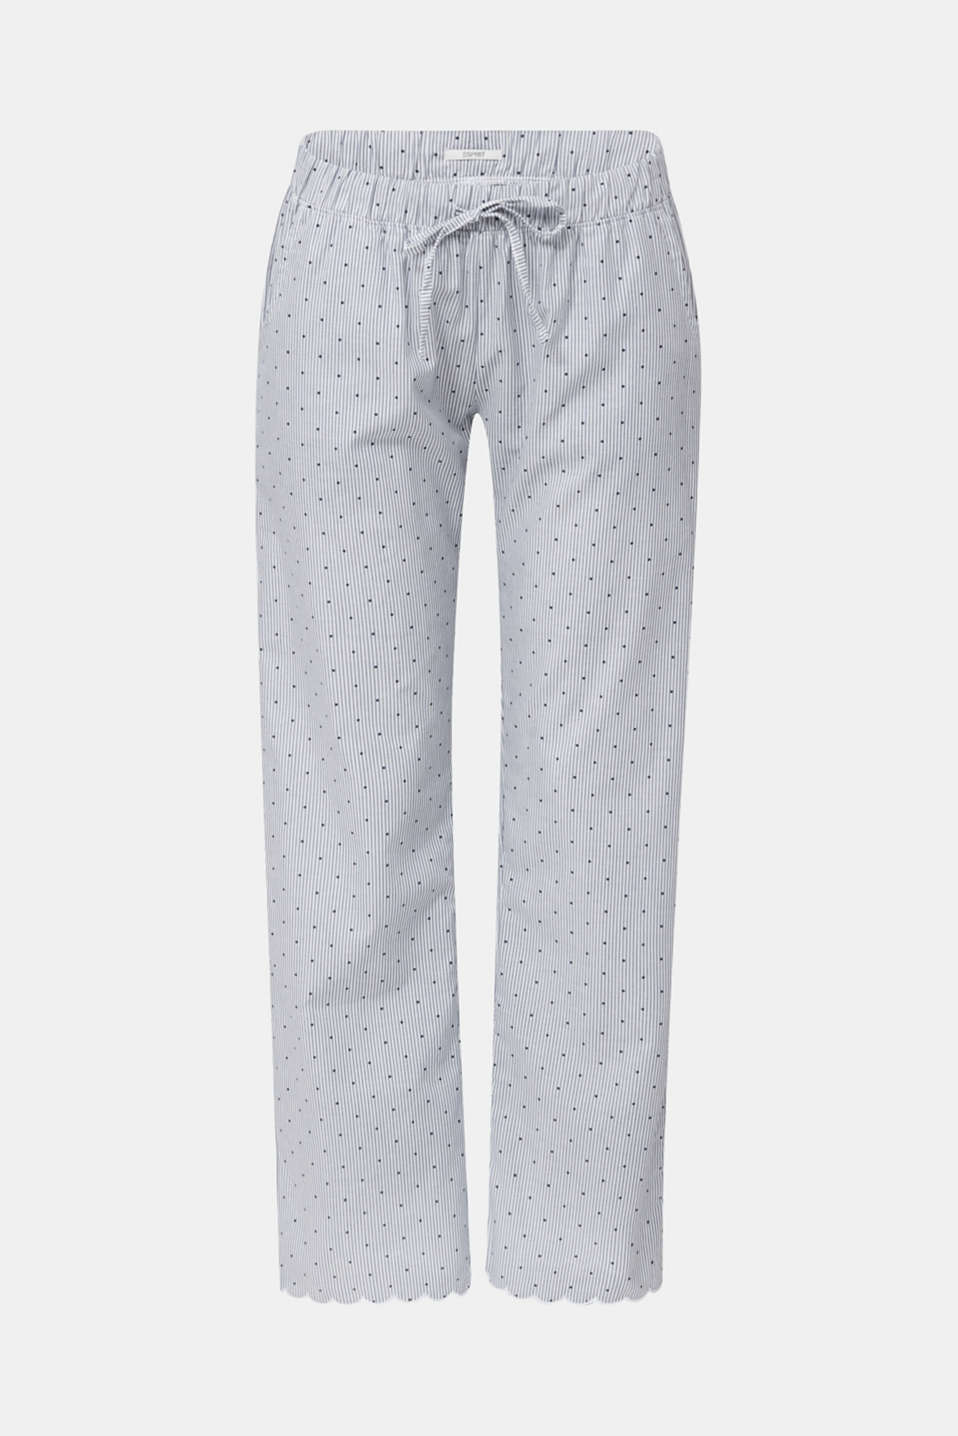 Woven trousers made of 100% cotton, BLUE LAVENDER, detail image number 7